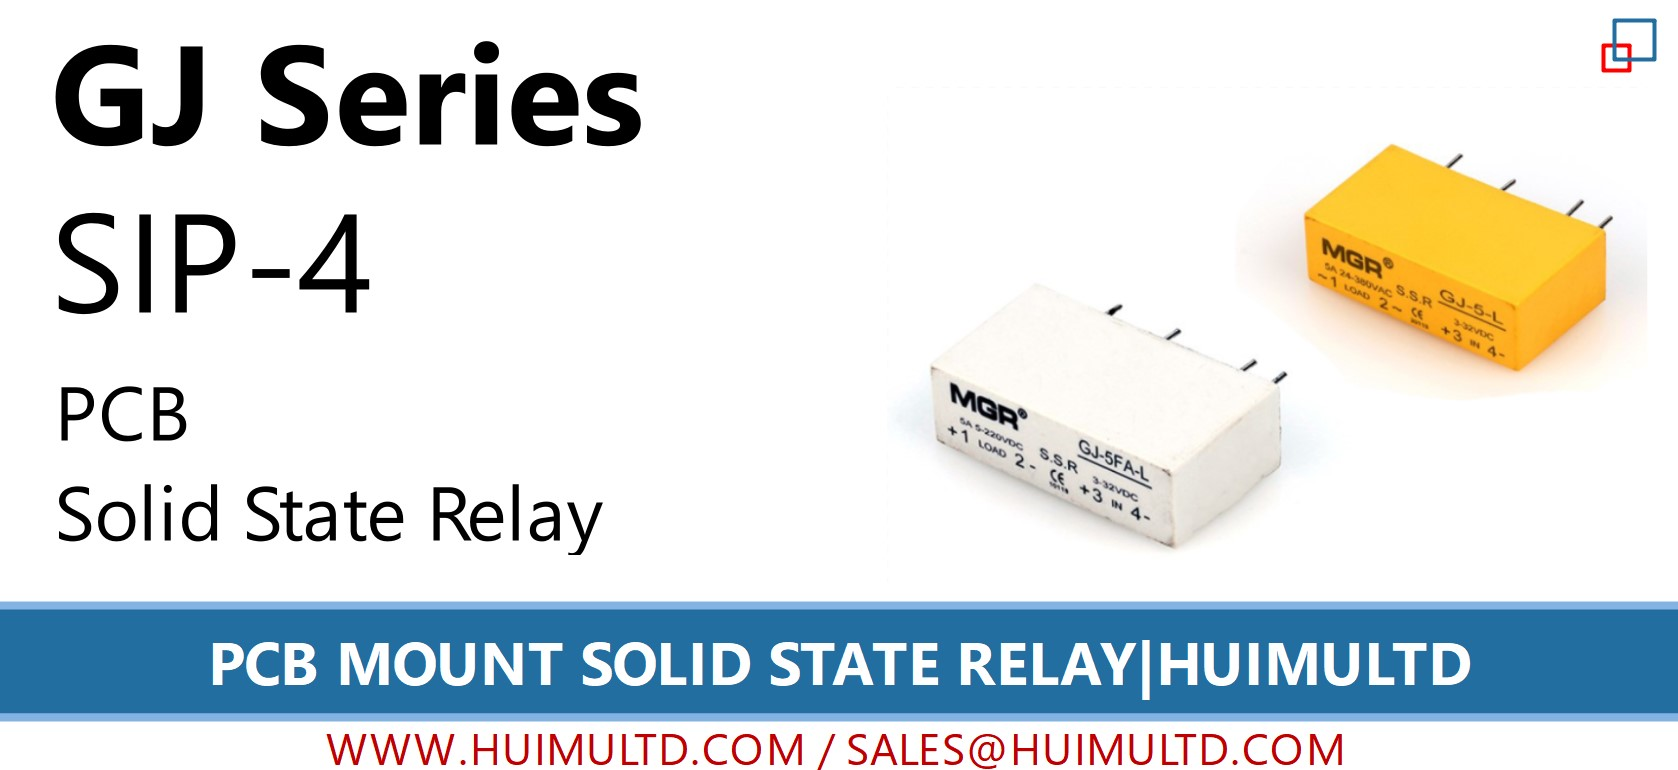 GJ series PCB Mount Solid State Relay